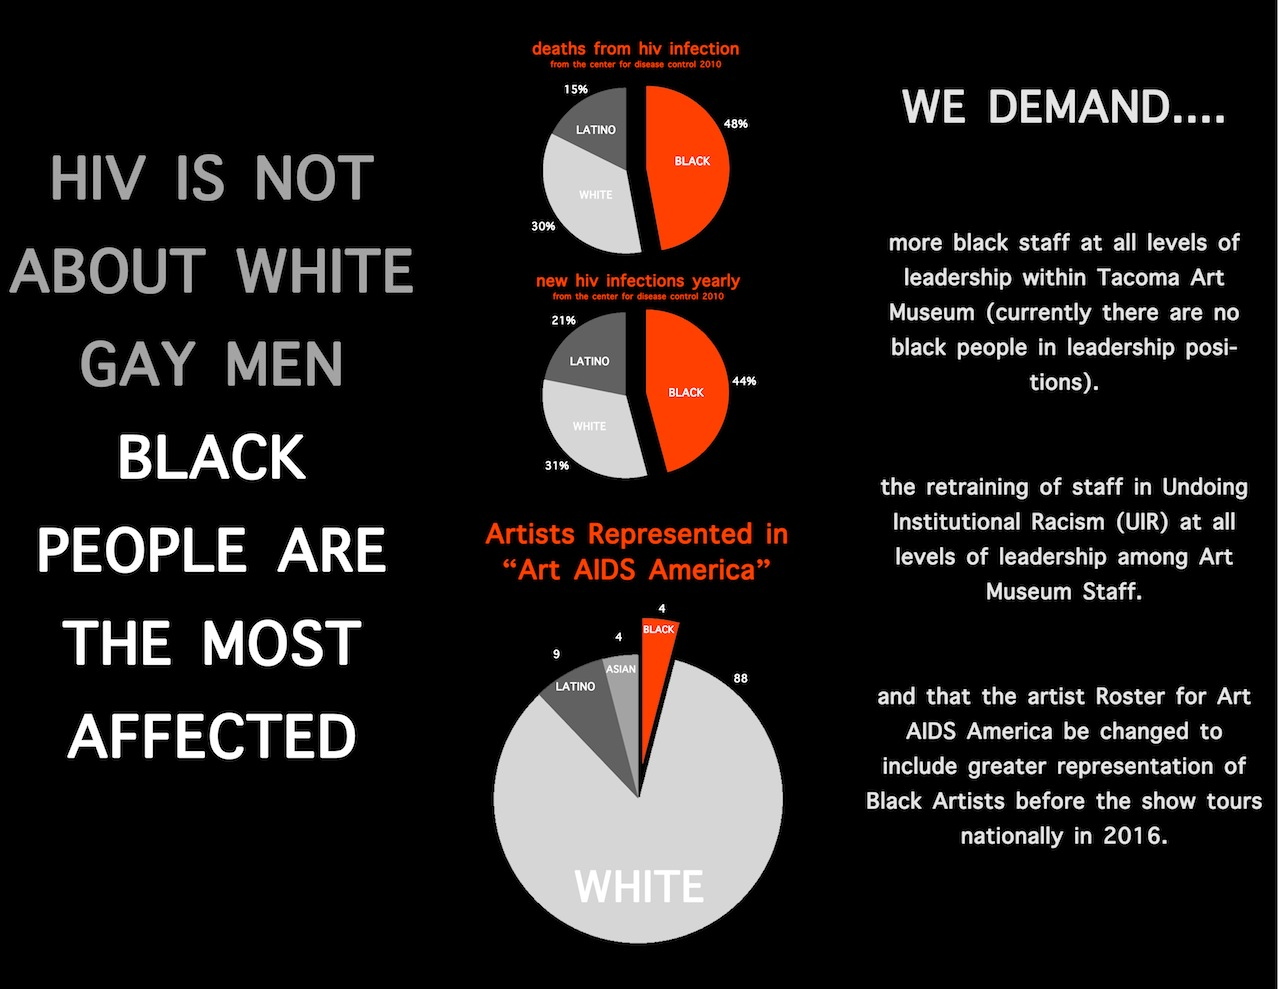 Statistics courtesy of the Tacoma Action Collective